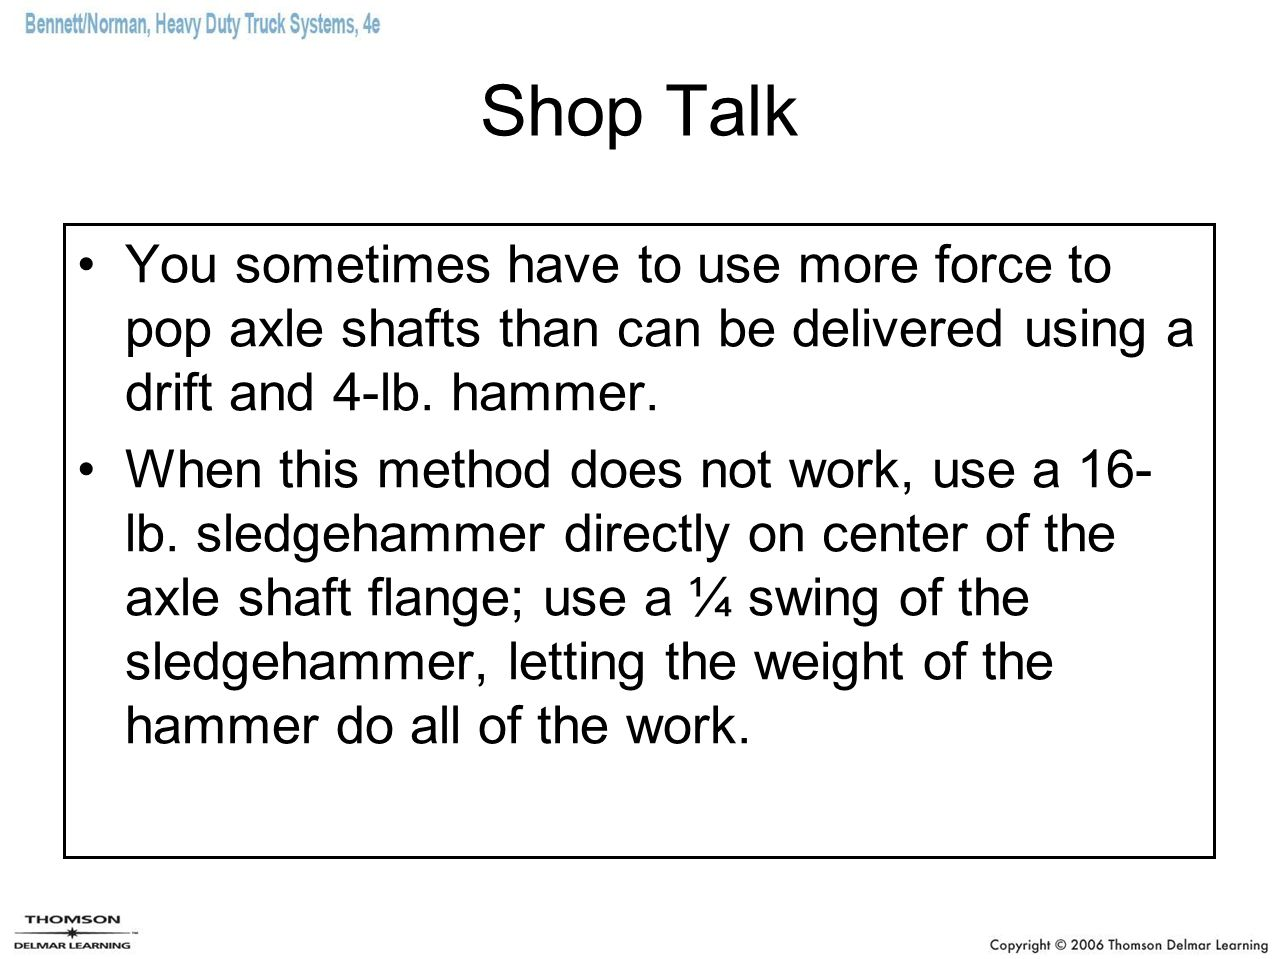 Shop Talk You sometimes have to use more force to pop axle shafts than can be delivered using a drift and 4-lb. hammer.